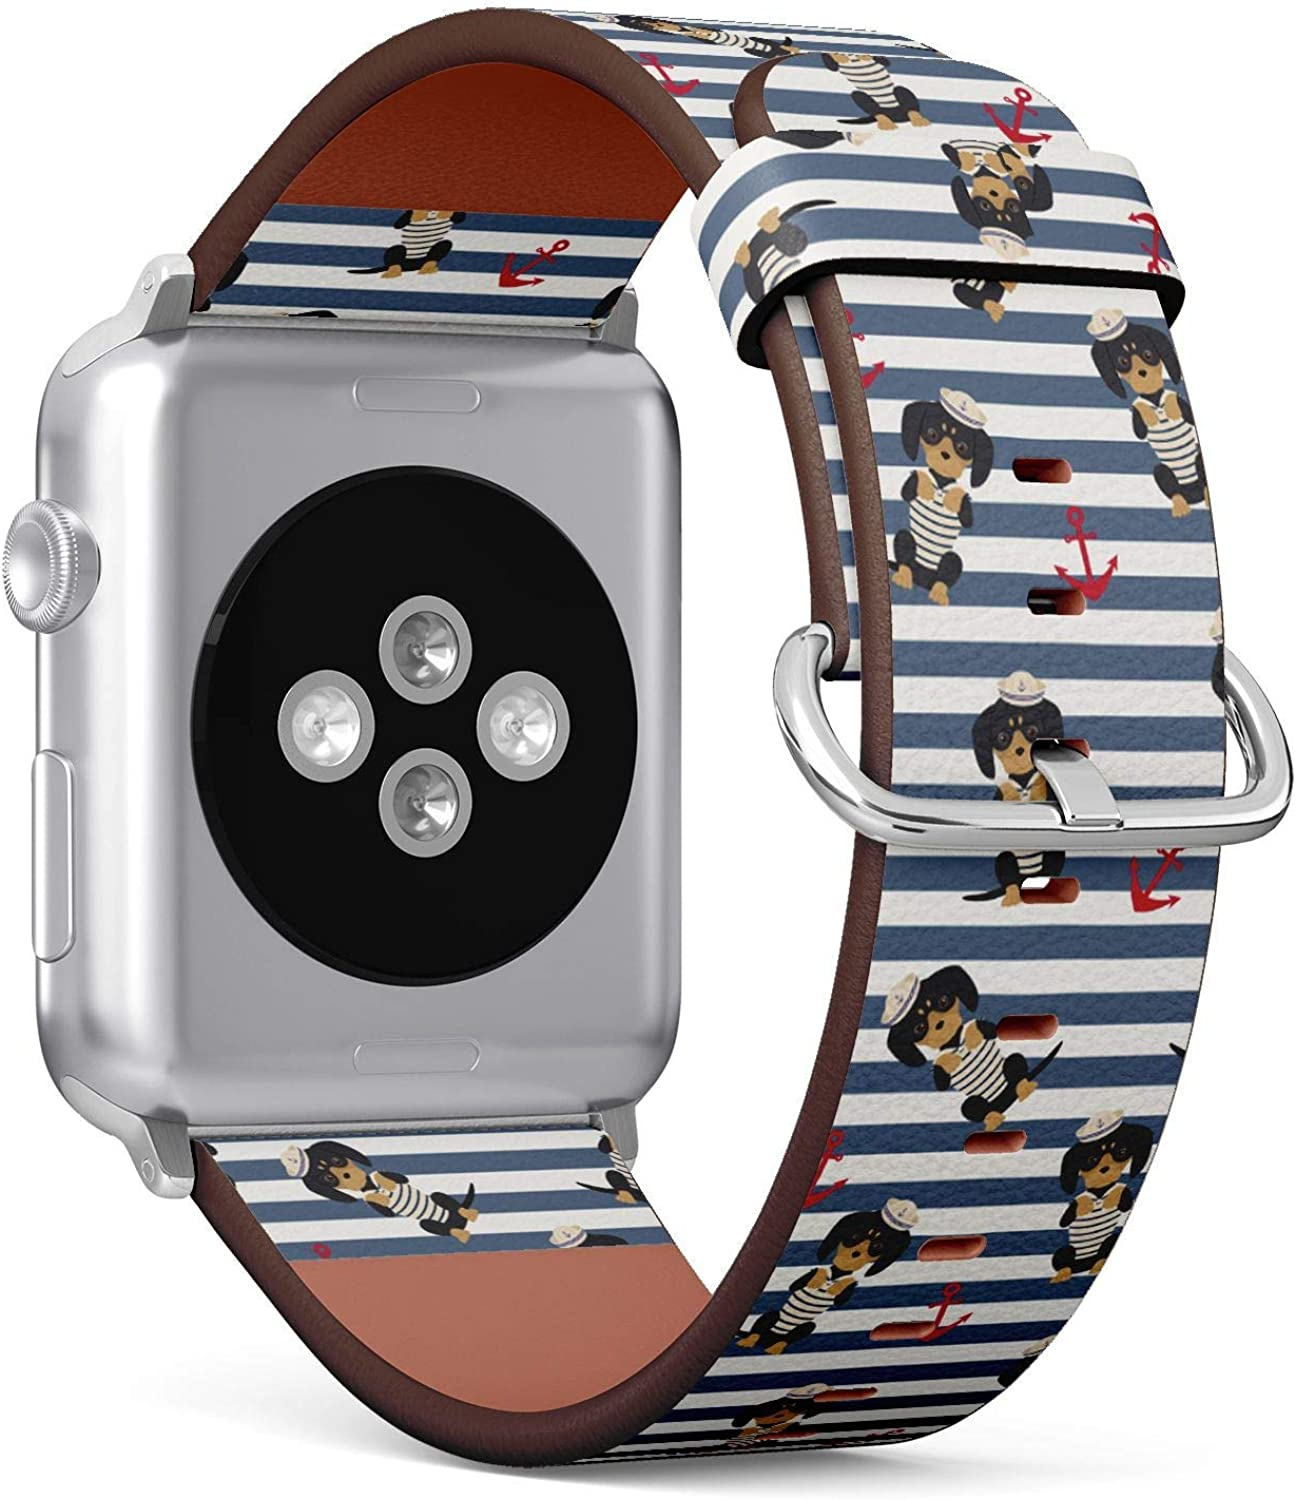 (Dachshund Puppy in a Sailorman Costume with Anchors Pattern) Patterned Leather Wristband Strap for Apple Watch Series 4/3/2/1 gen,Replacement for iWatch 38mm / 40mm Bands